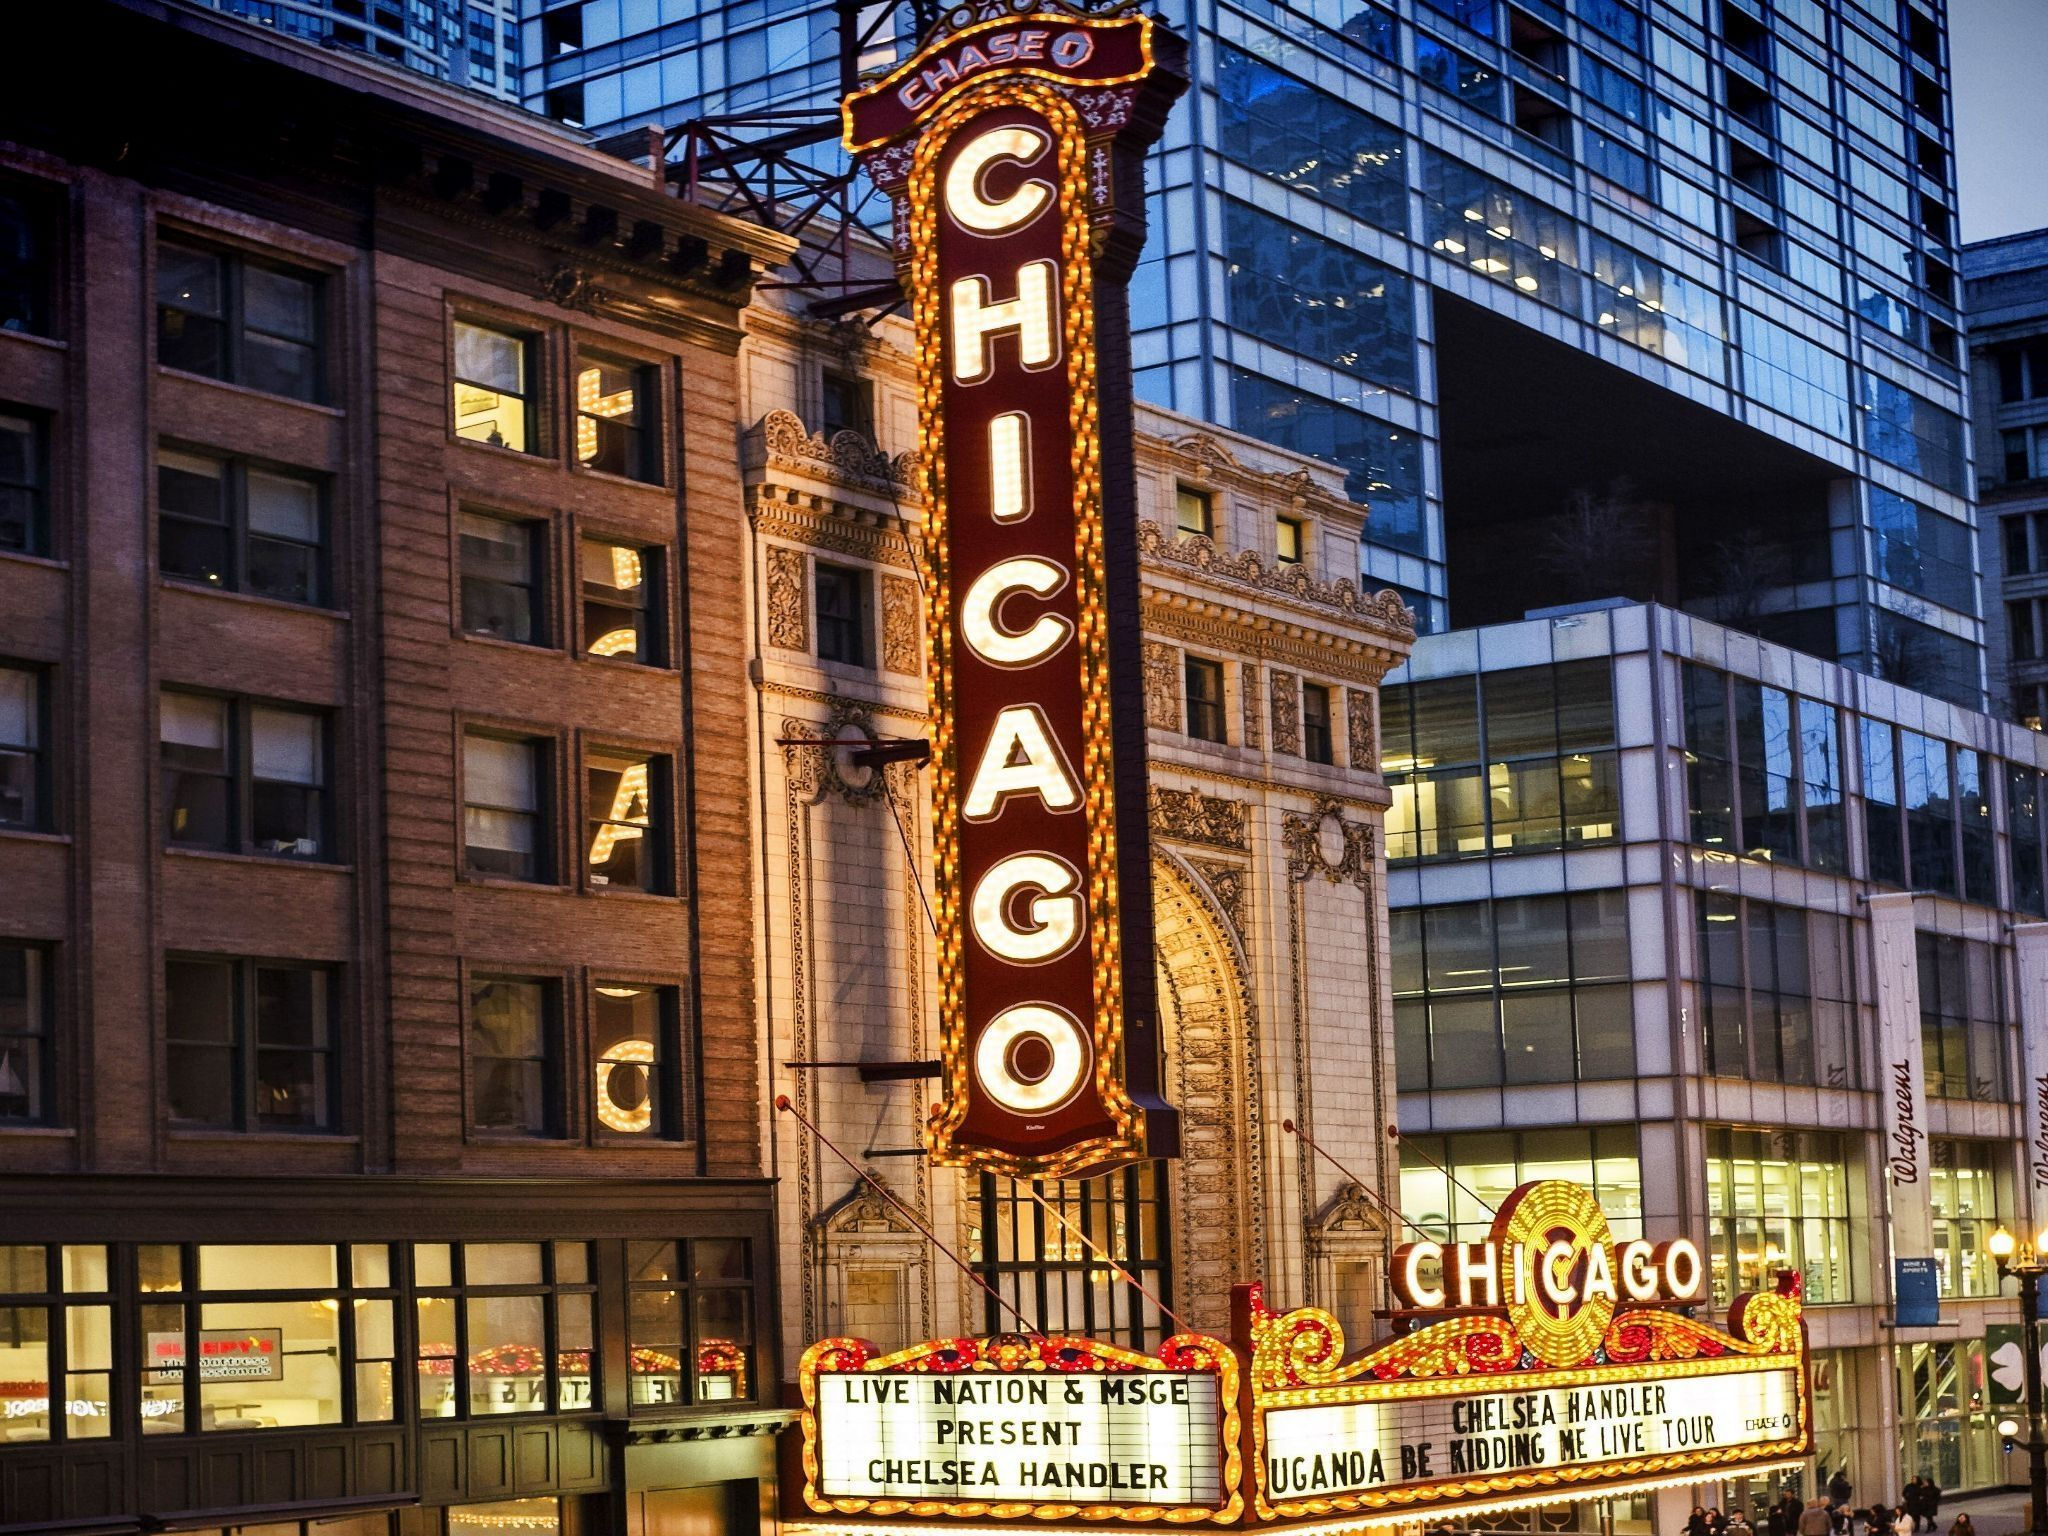 W Chicago - City Center - Theaters